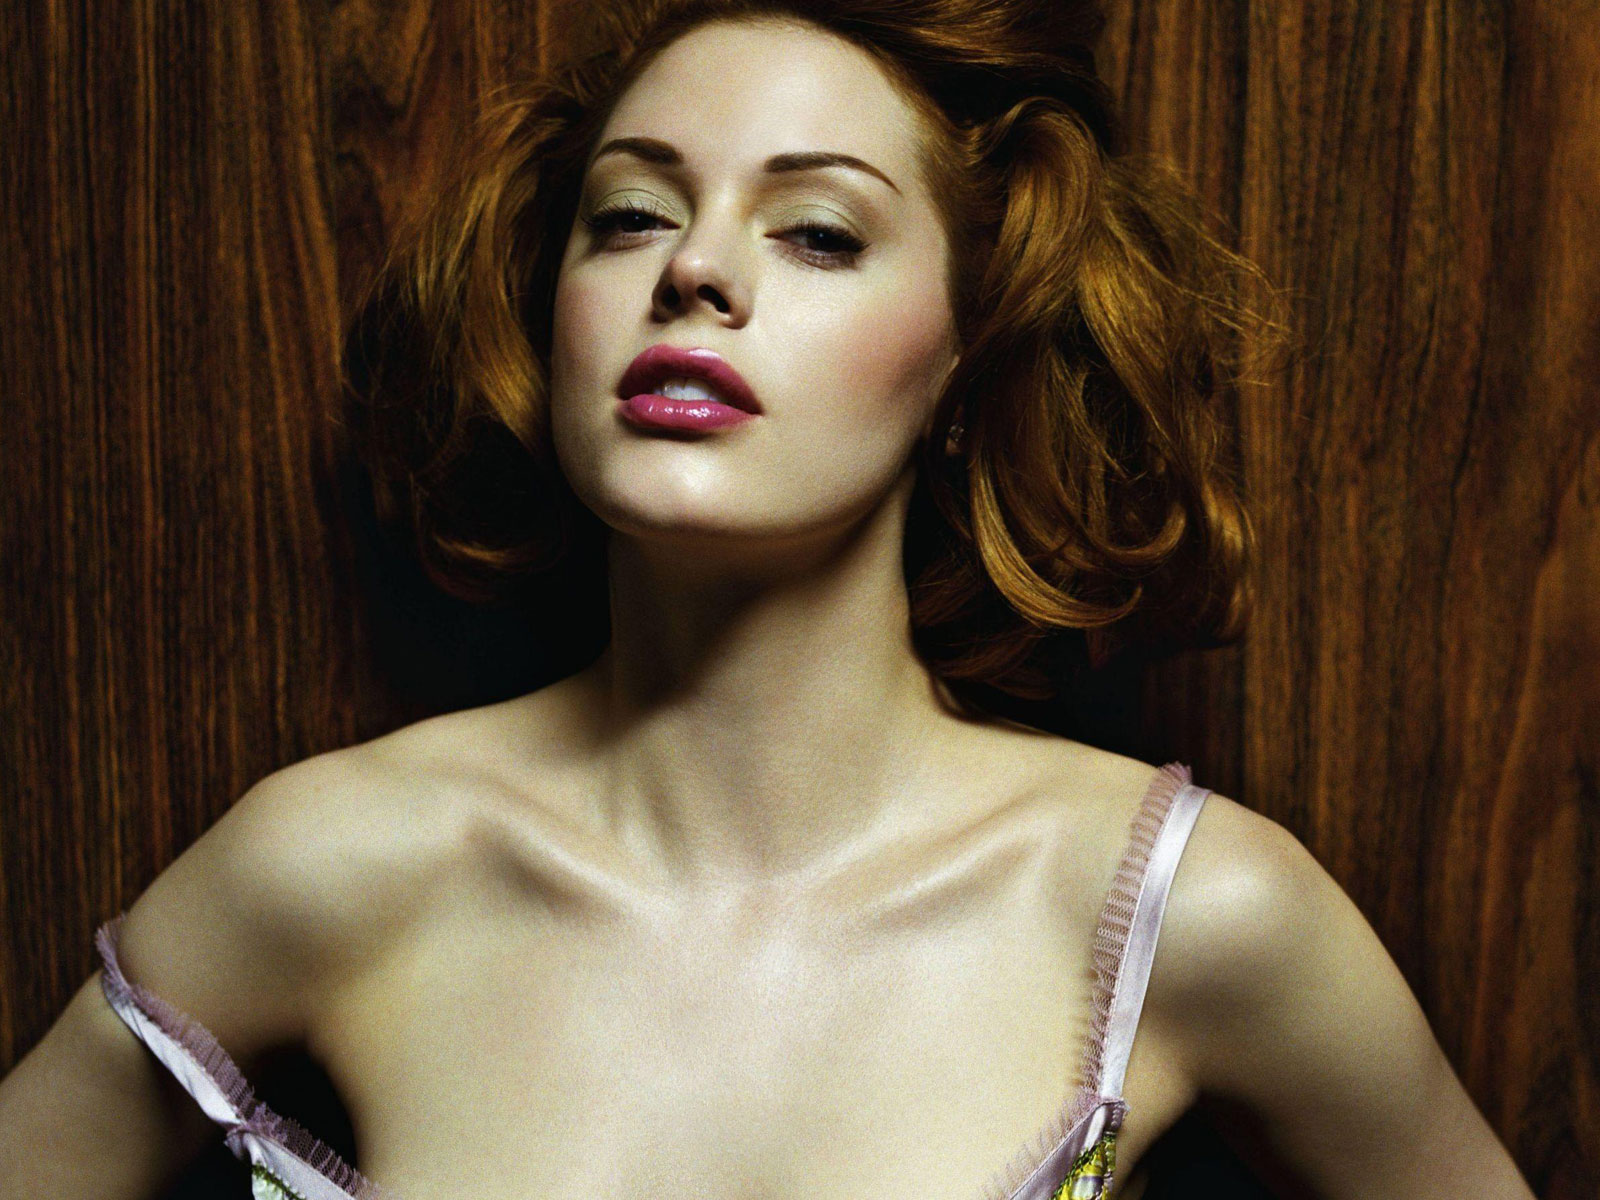 Hot Rose McGowan nude (44 photo), Tits, Bikini, Twitter, swimsuit 2006